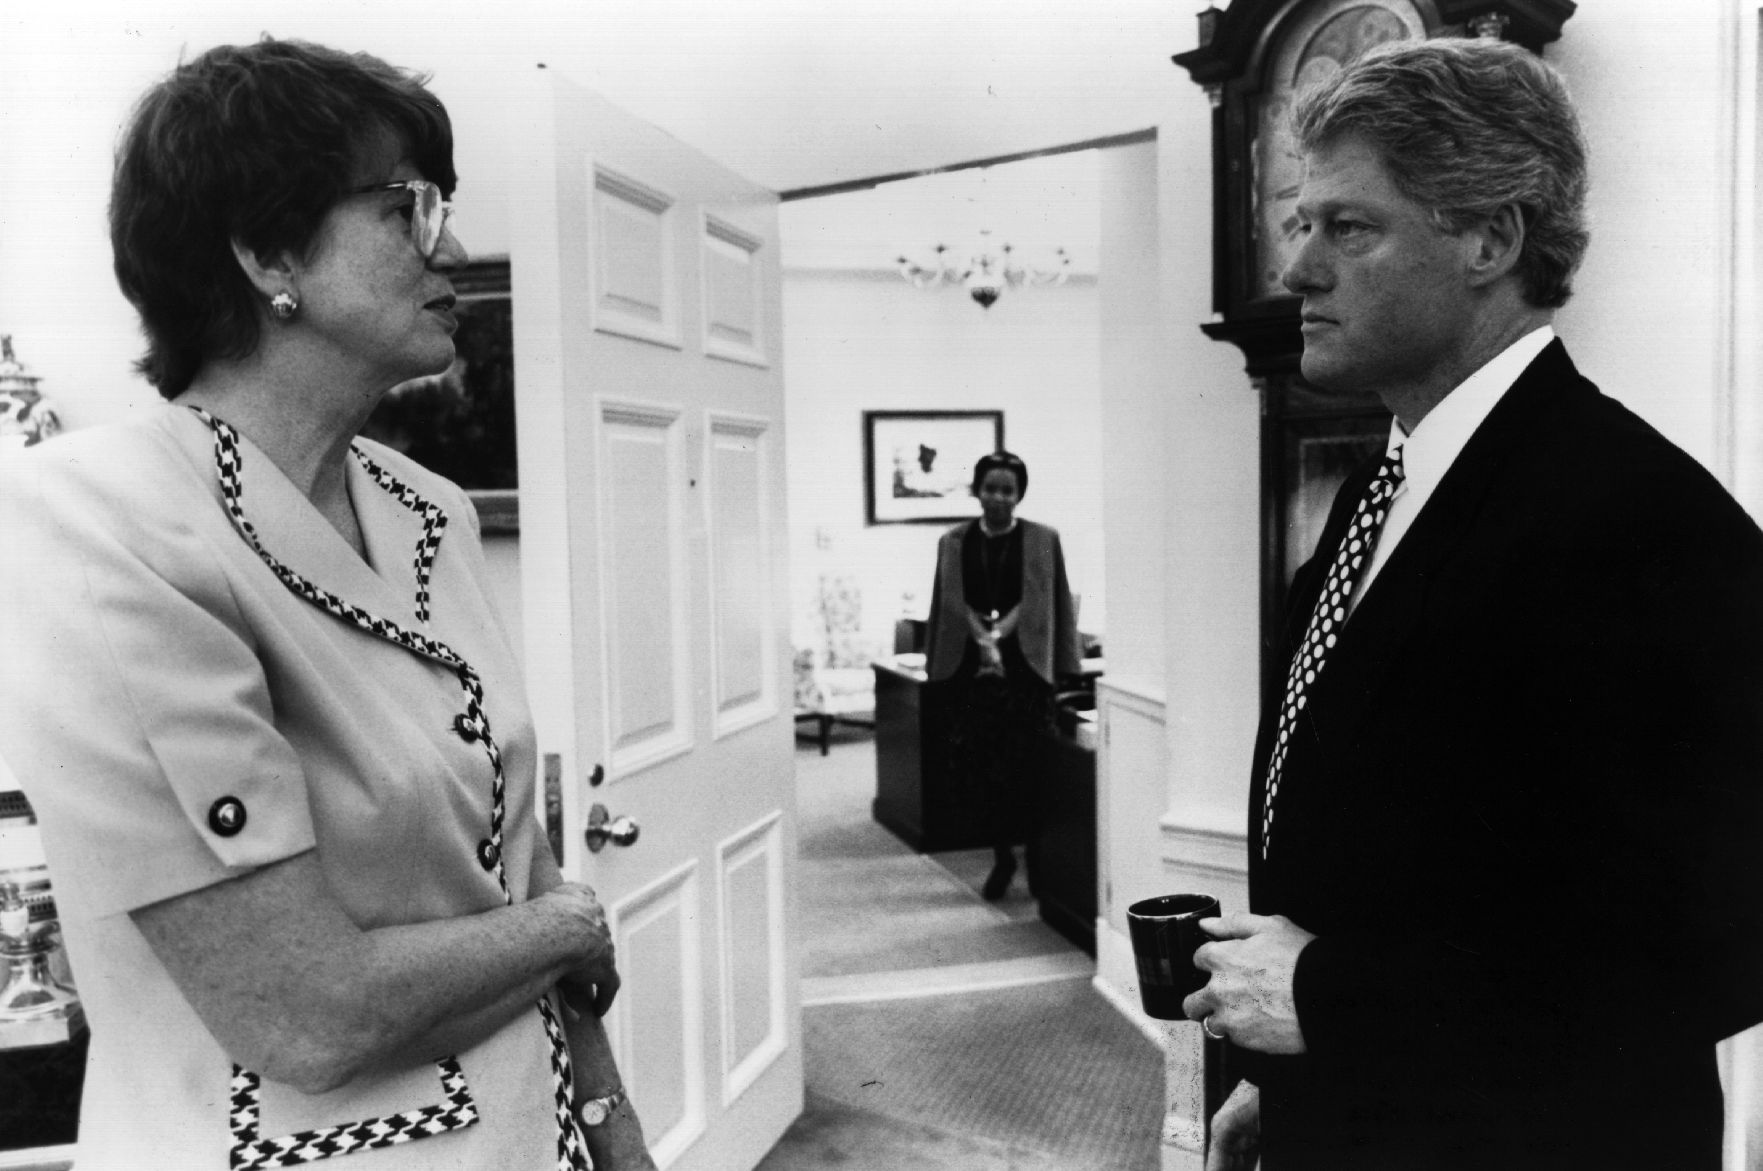 Attorney General Janet Reno and President Bill Clinton in the White House, Washington DC, in 1993.